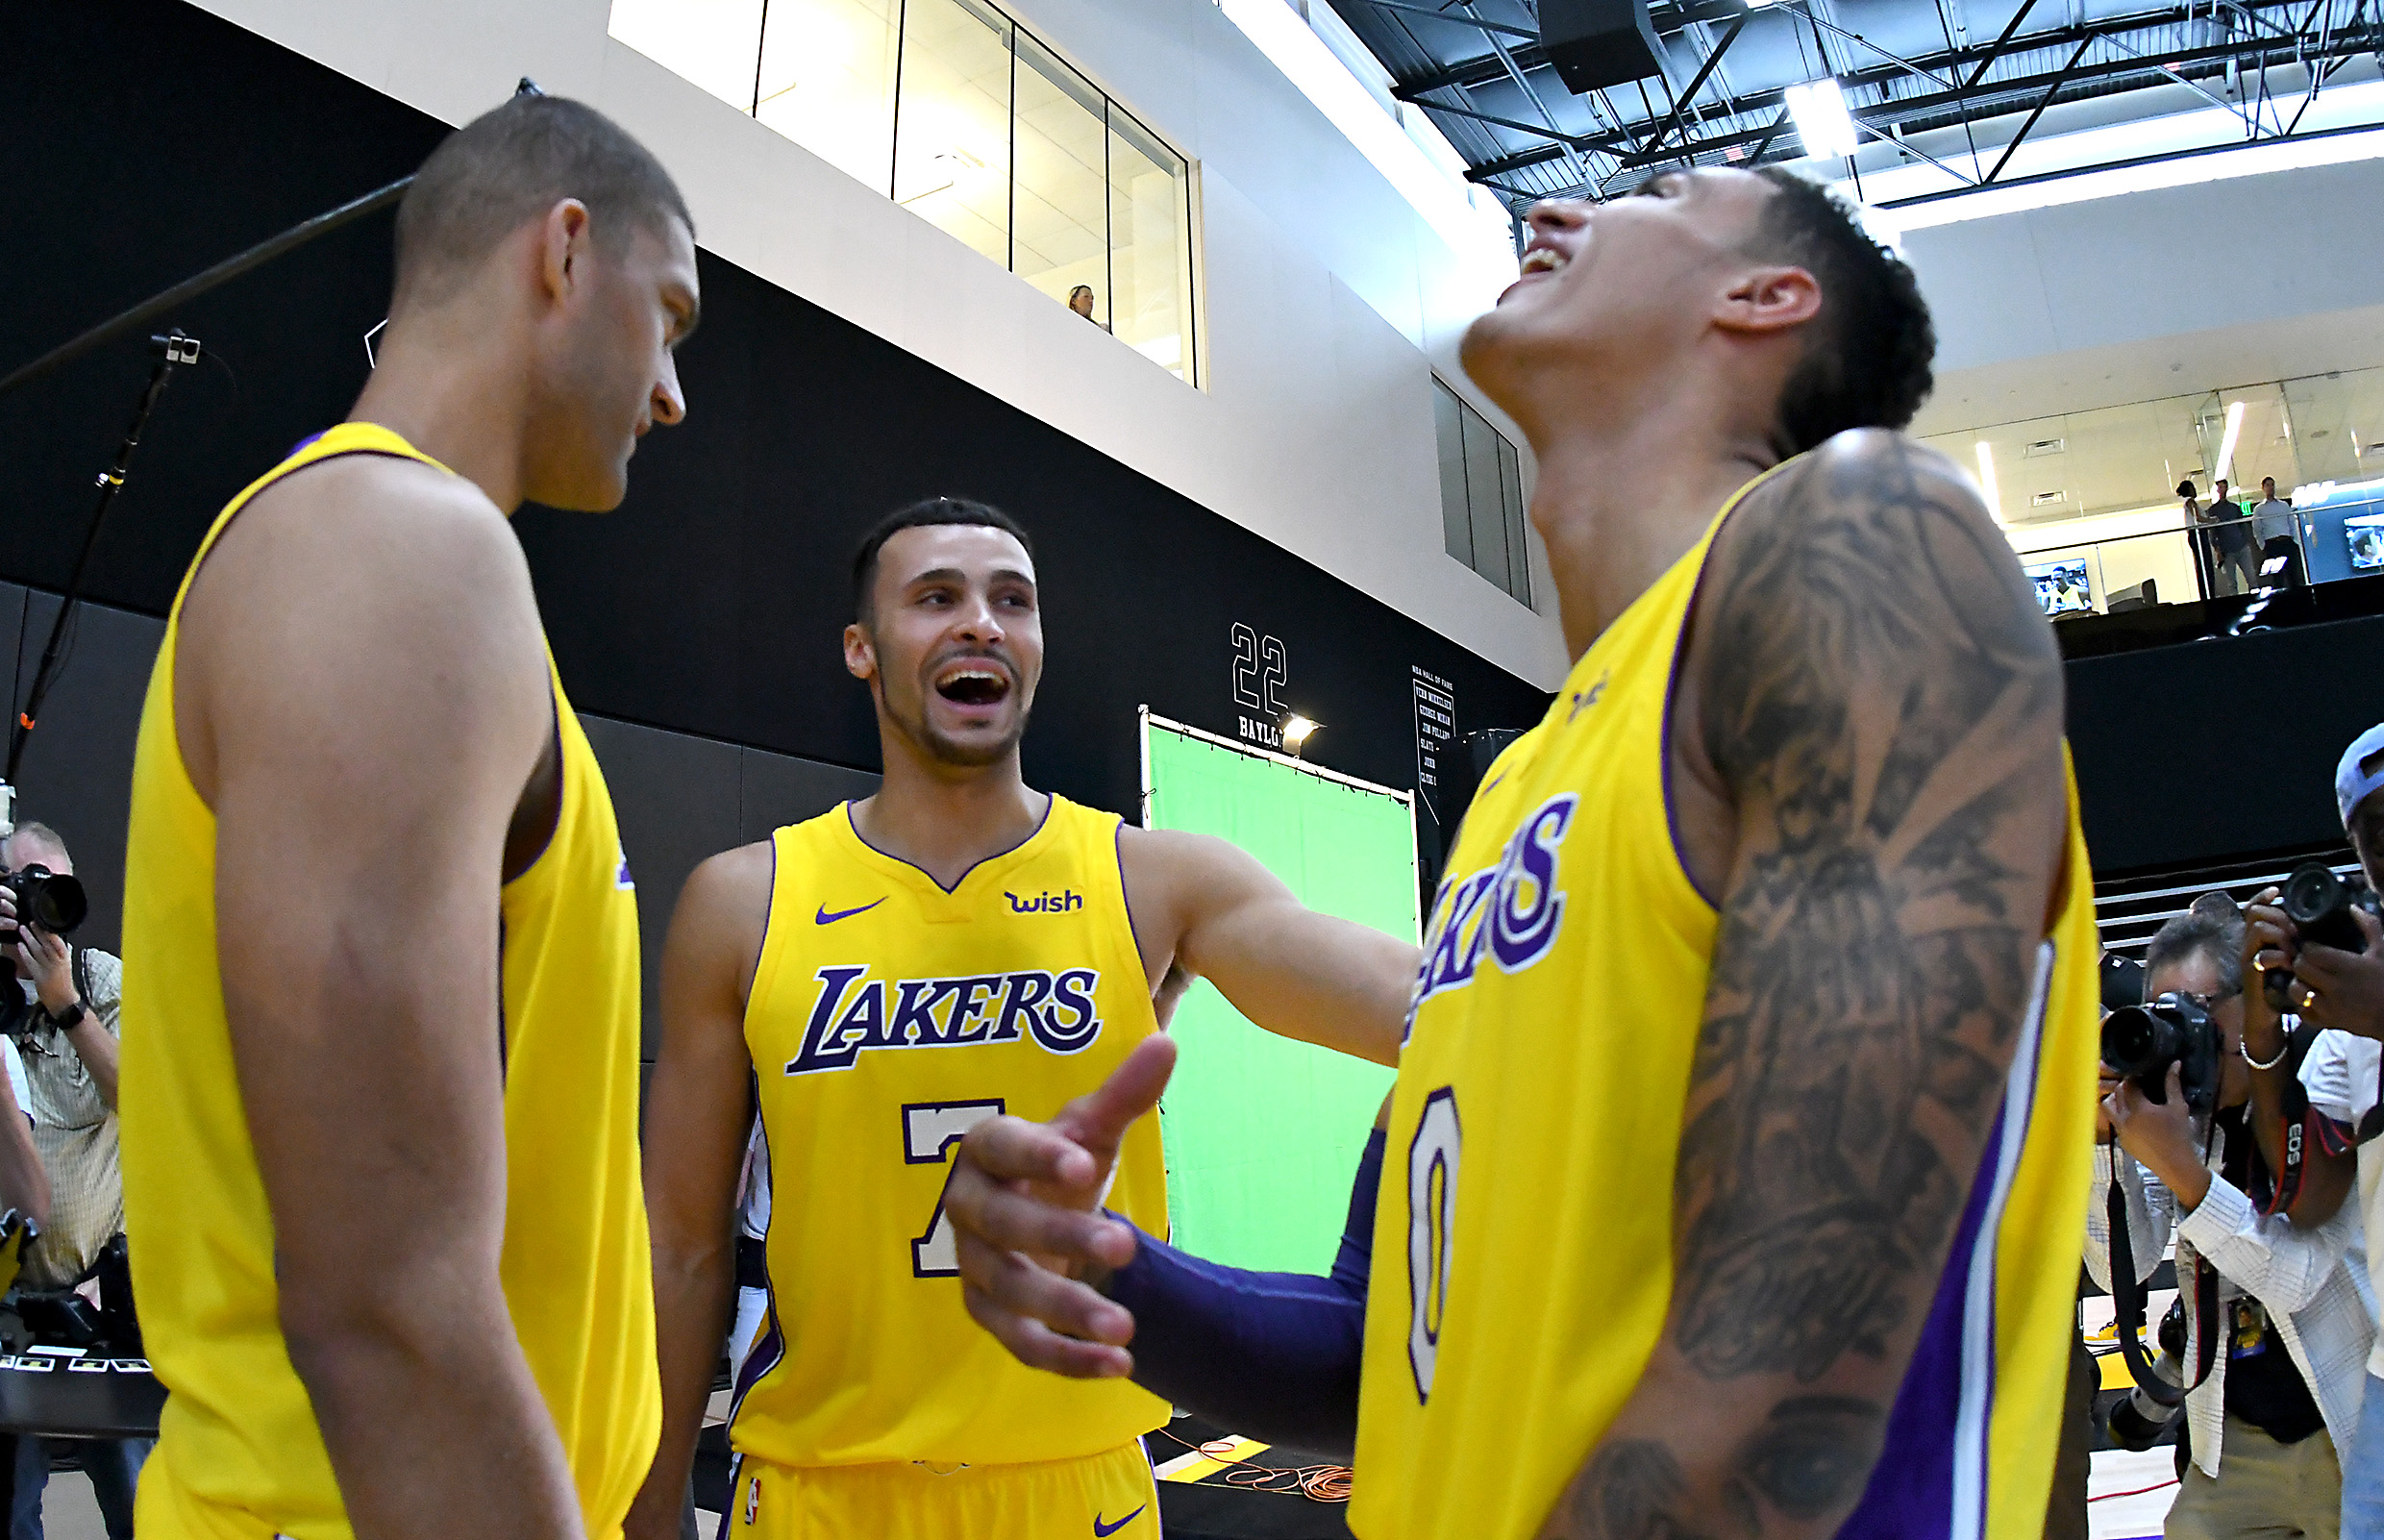 4058a0f92 Let this picture of Kuzma and Nance Jr. remind us that the Lakers have a  good problem